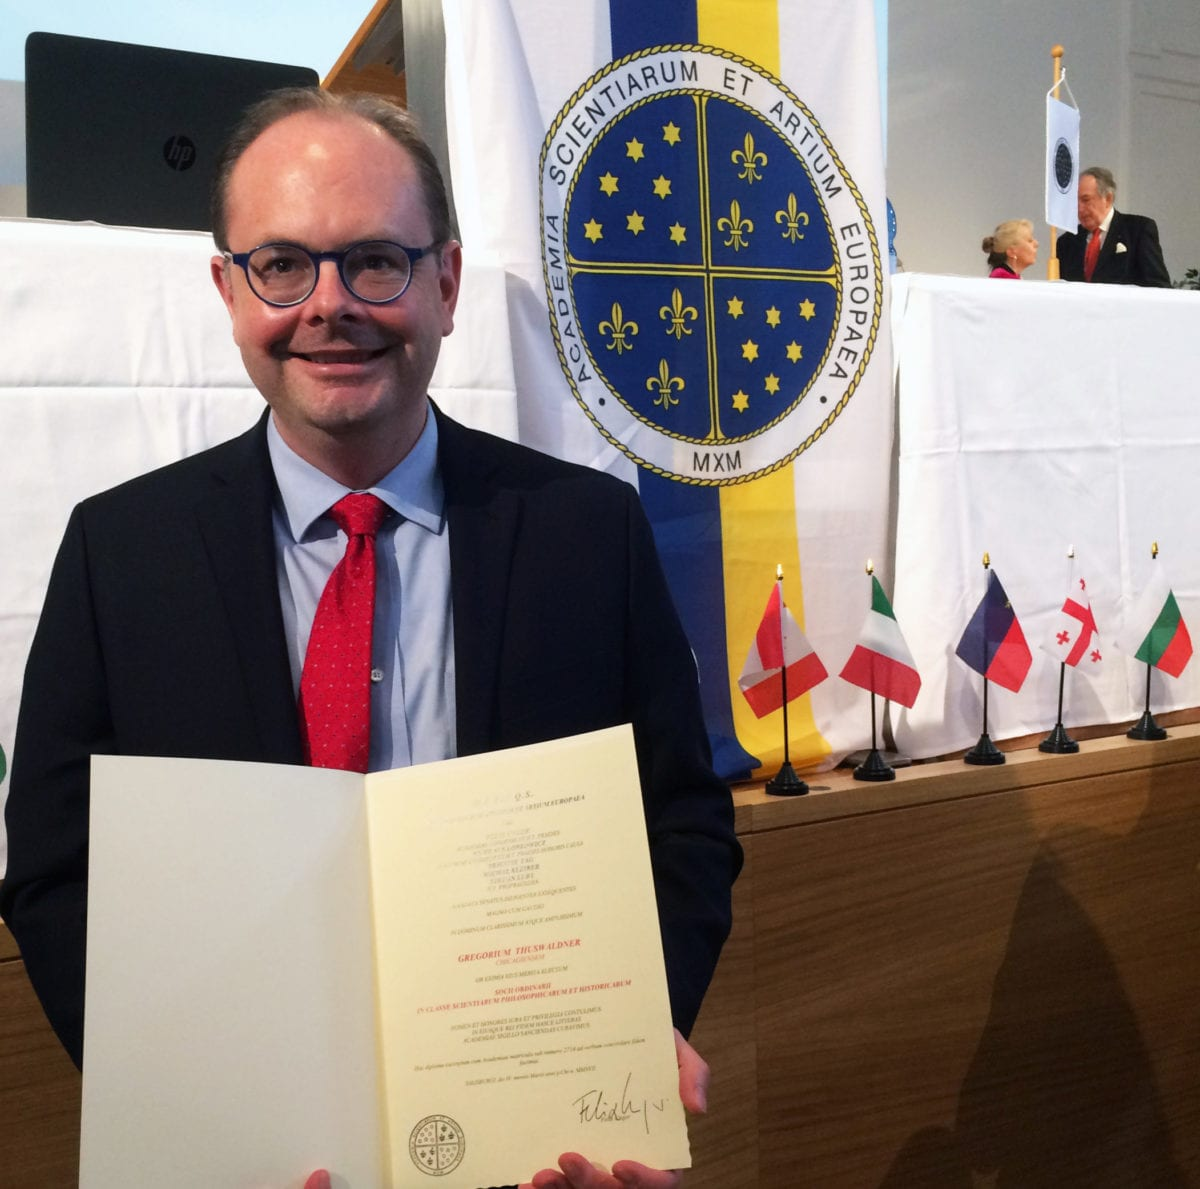 Dr. Gregor Thuswaldner Inaugurated into the European Academy of Sciences and Arts